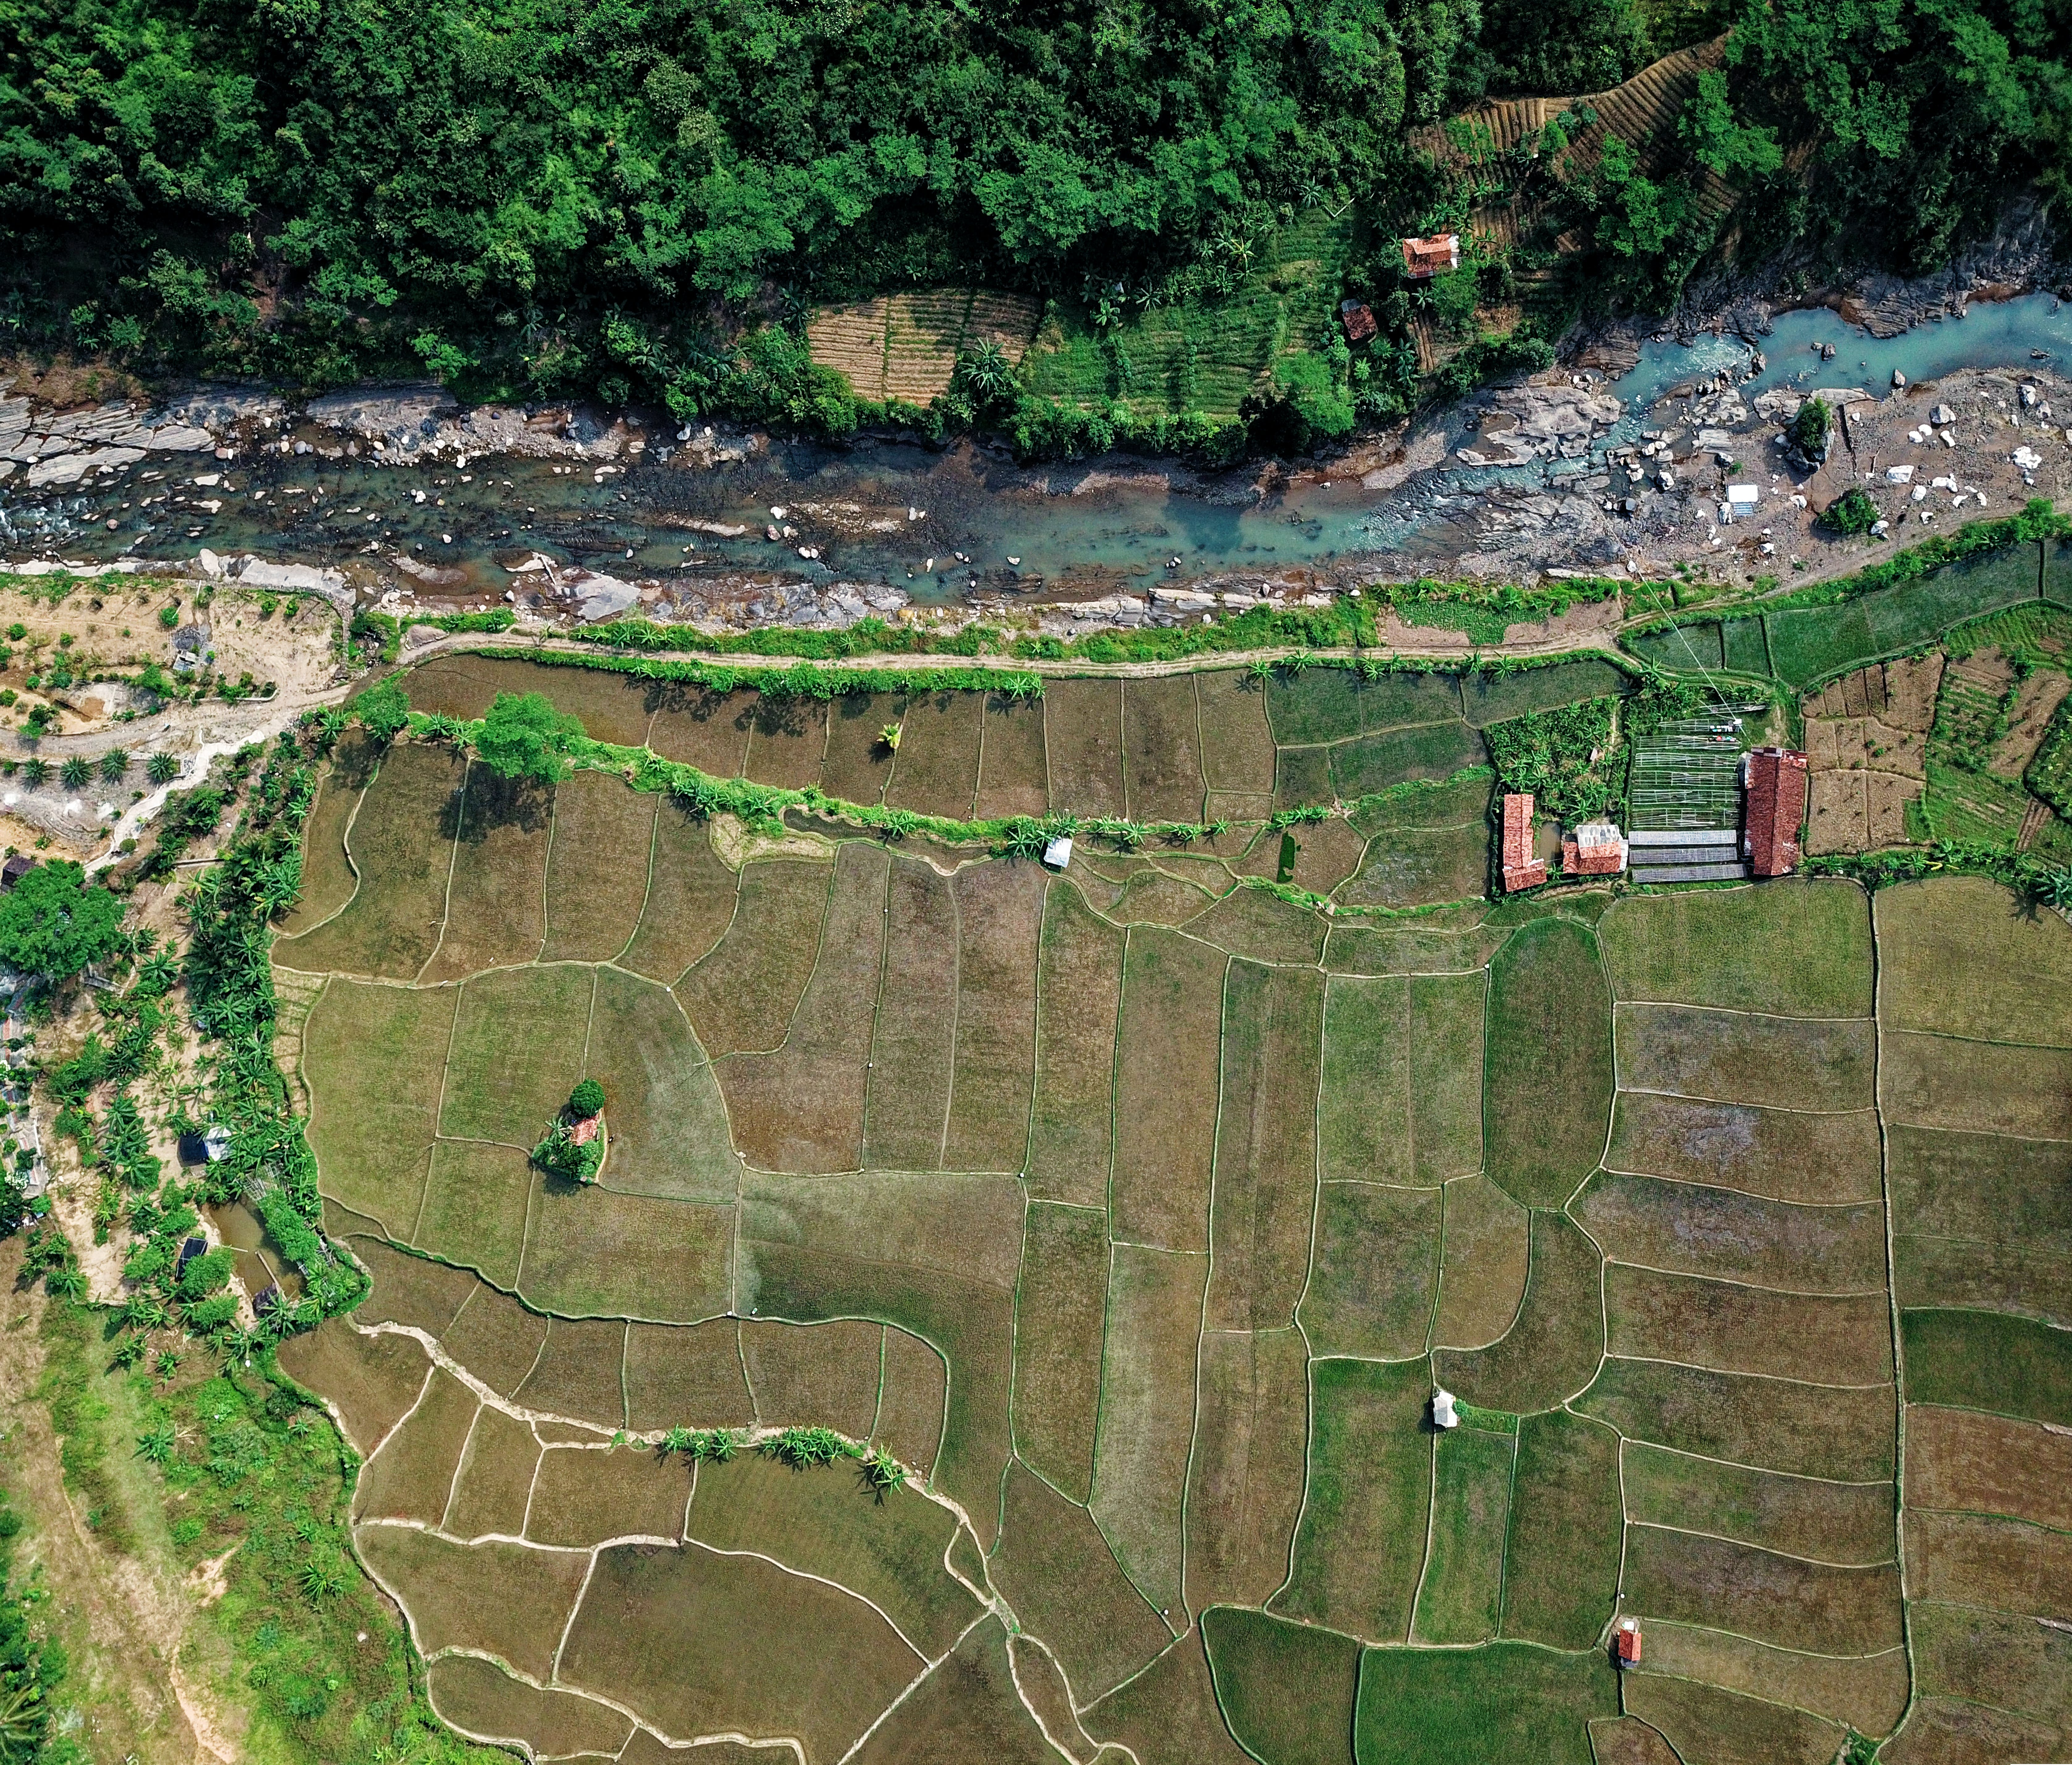 Aerial Photography Of River Beside Cropland